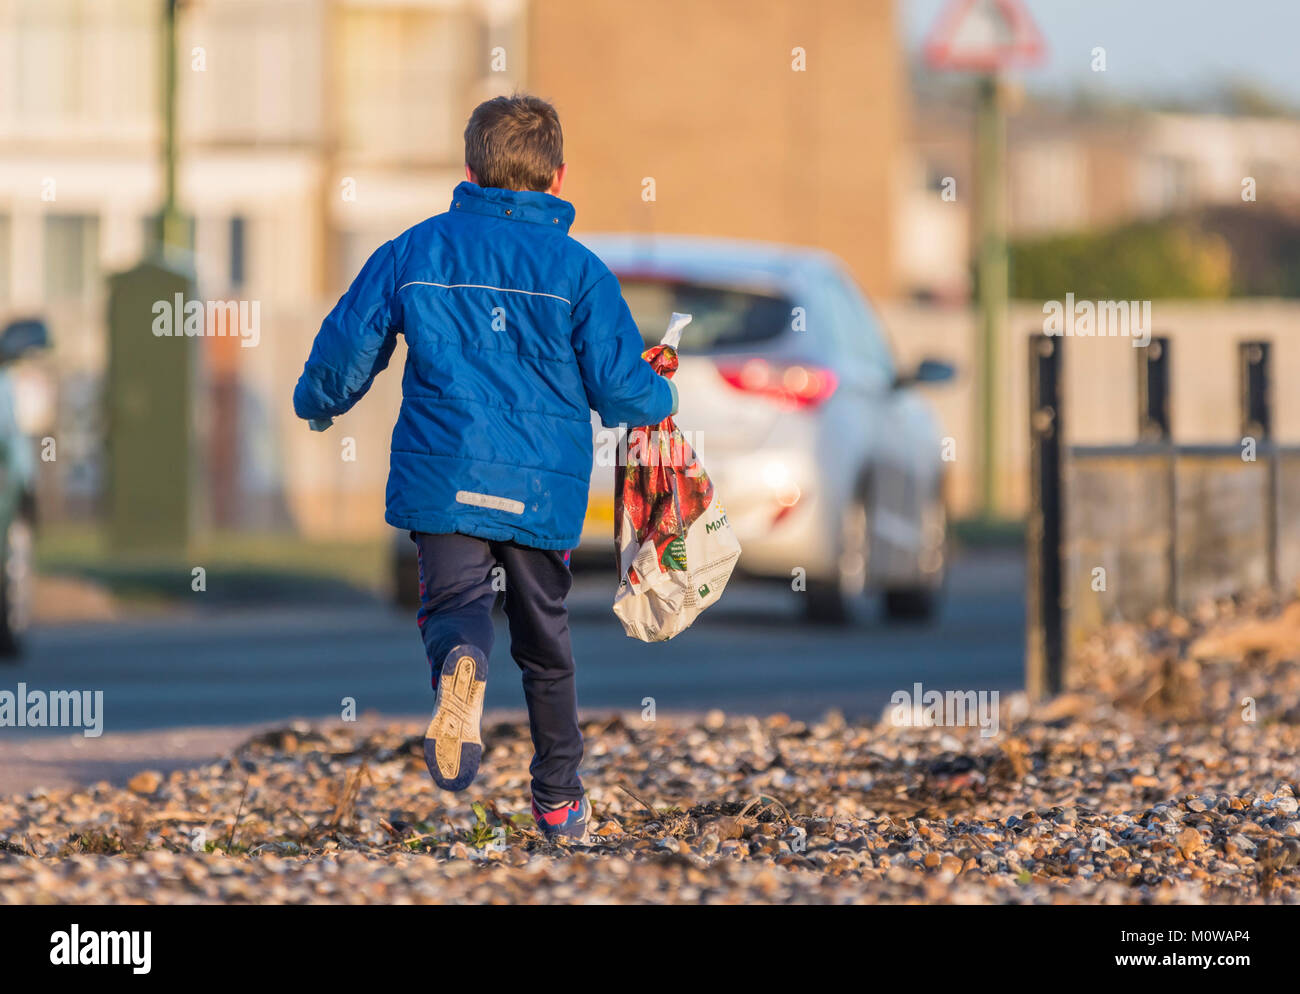 Young boy running away. Escaping concept. Child on the run. - Stock Image